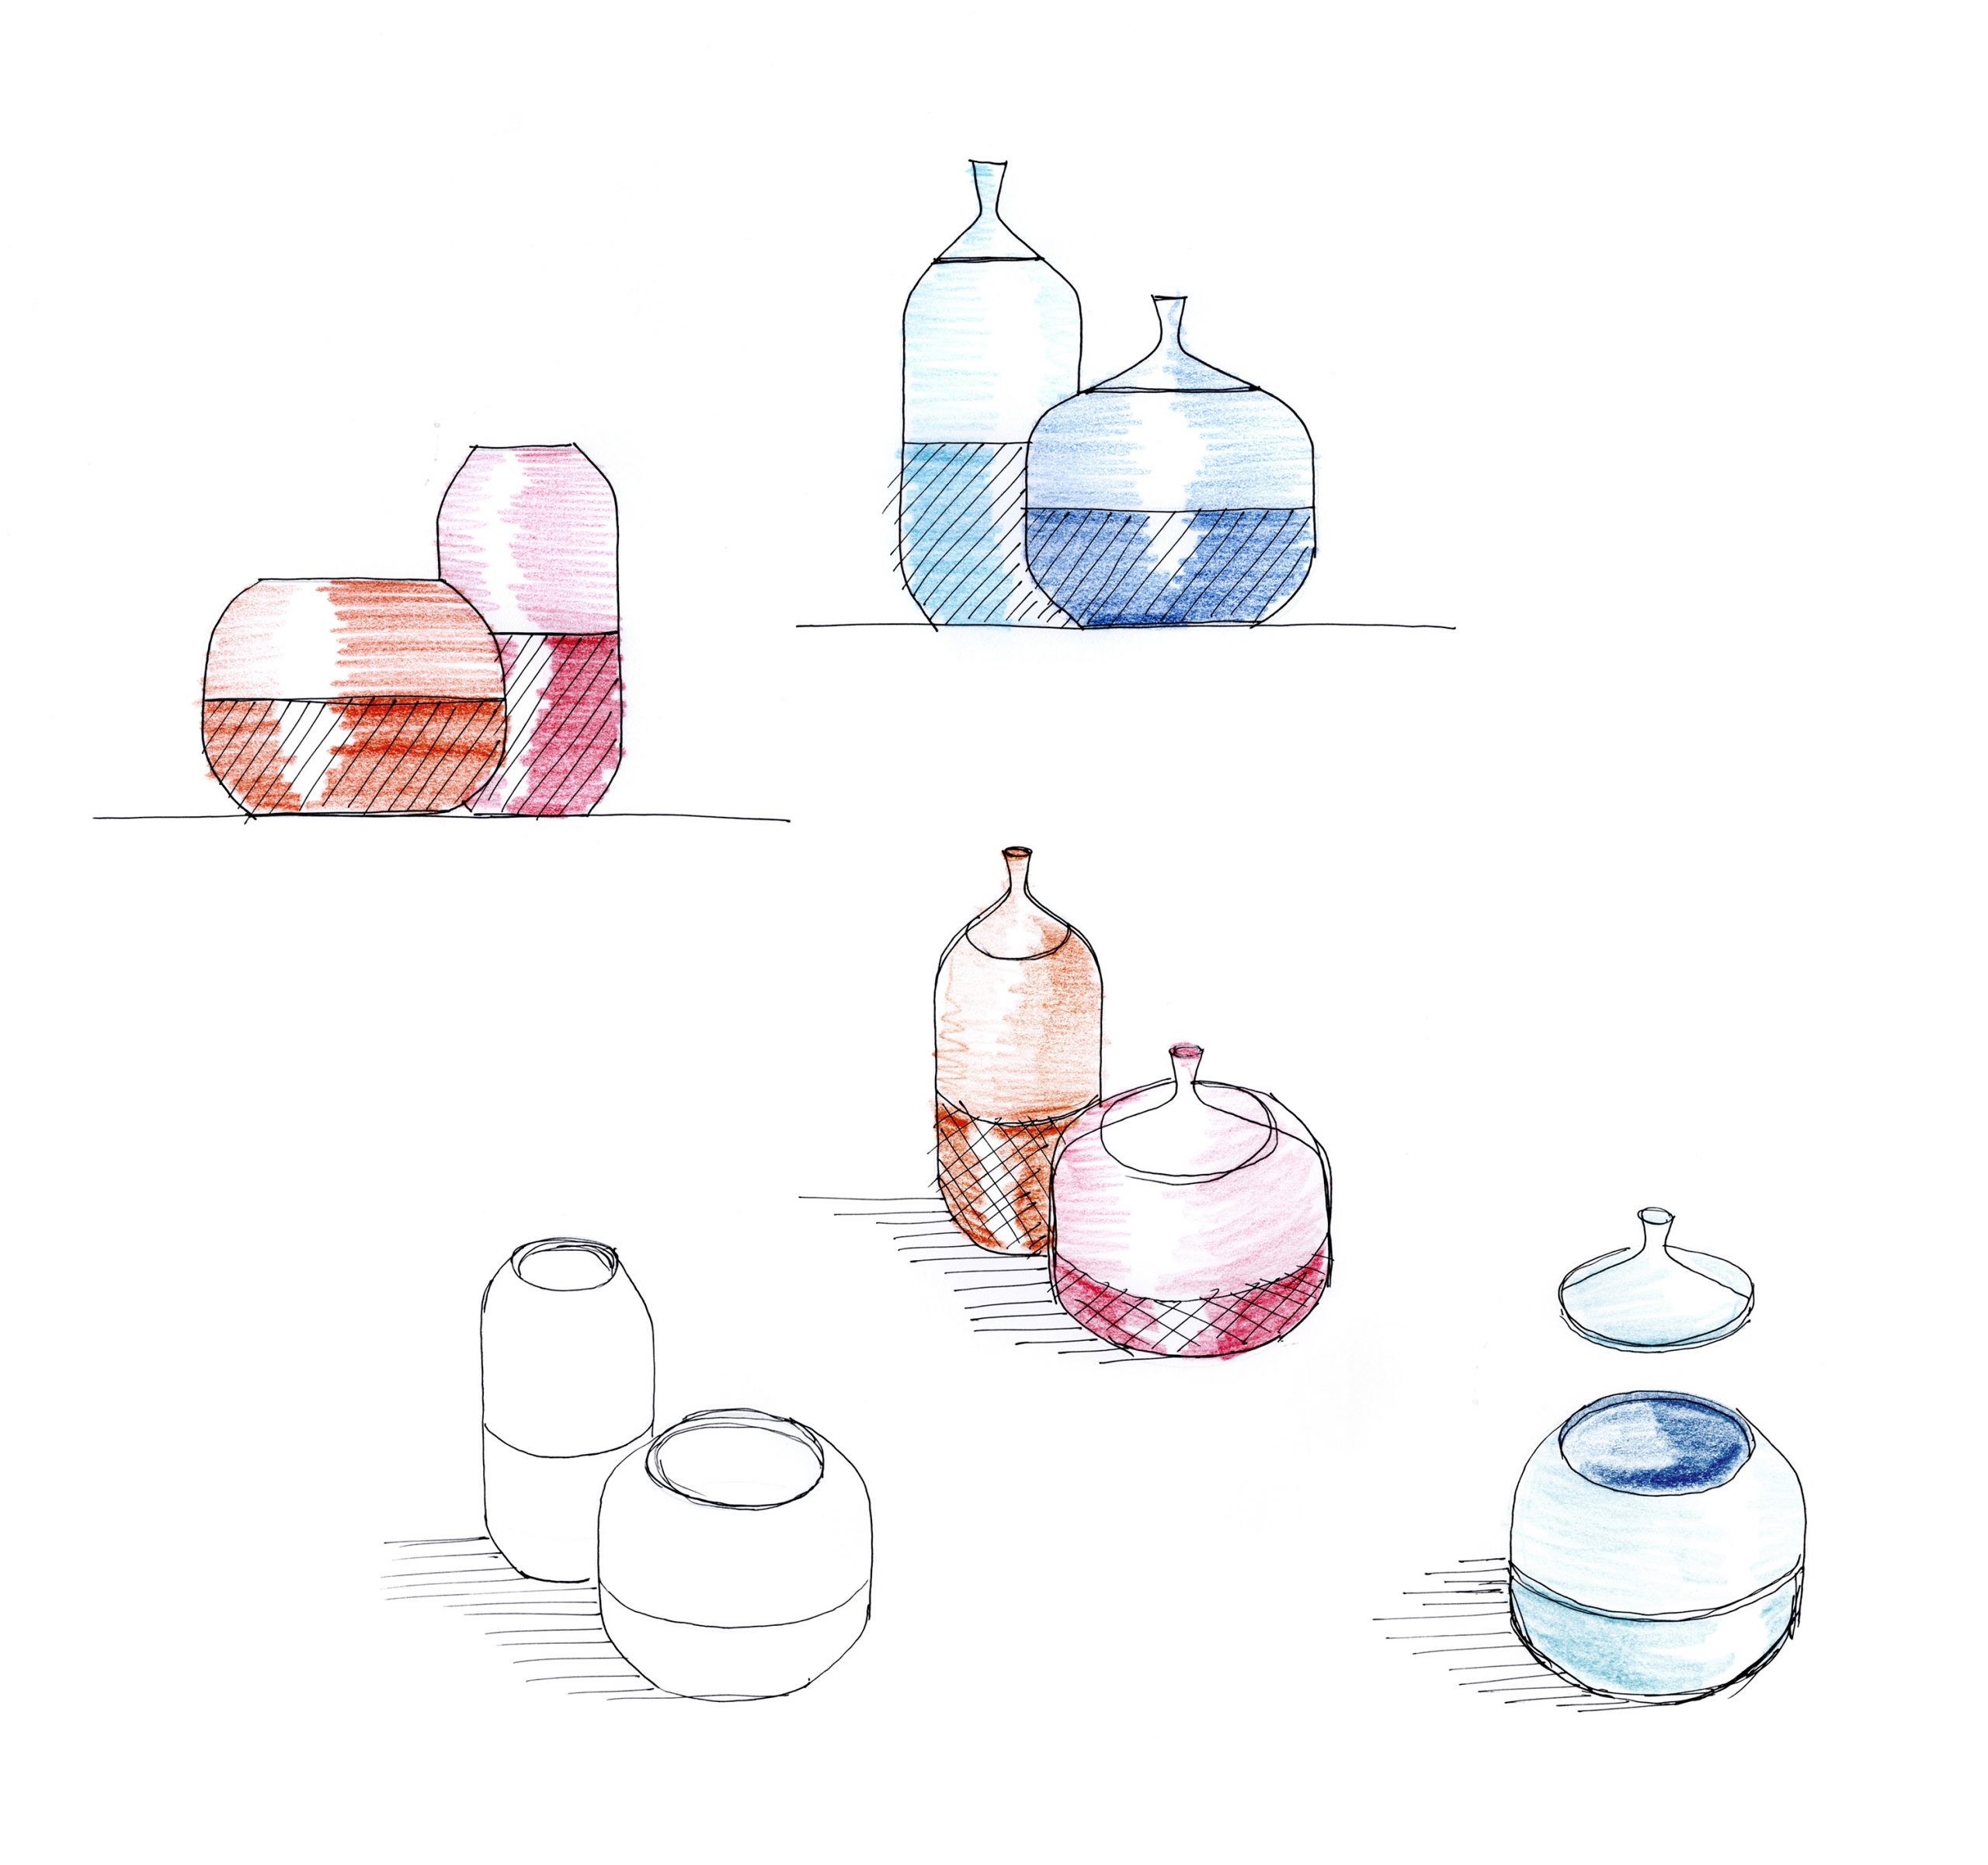 Sketch of the Pepo vases and containers by Debiasi Sandri for Normann Copenhagen